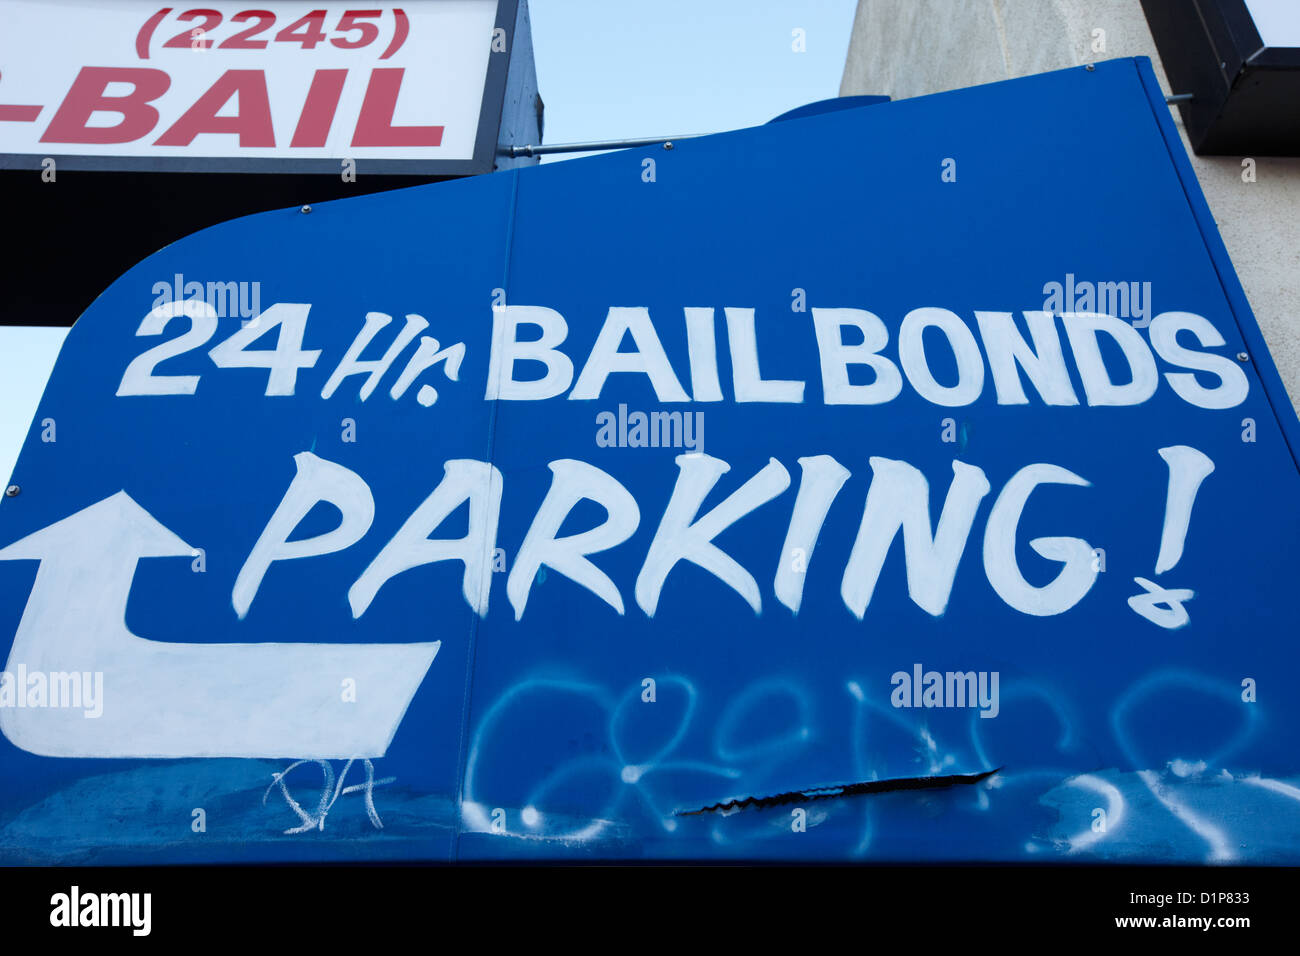 24hr bail bonds parking sign Las Vegas Nevada USA - Stock Image